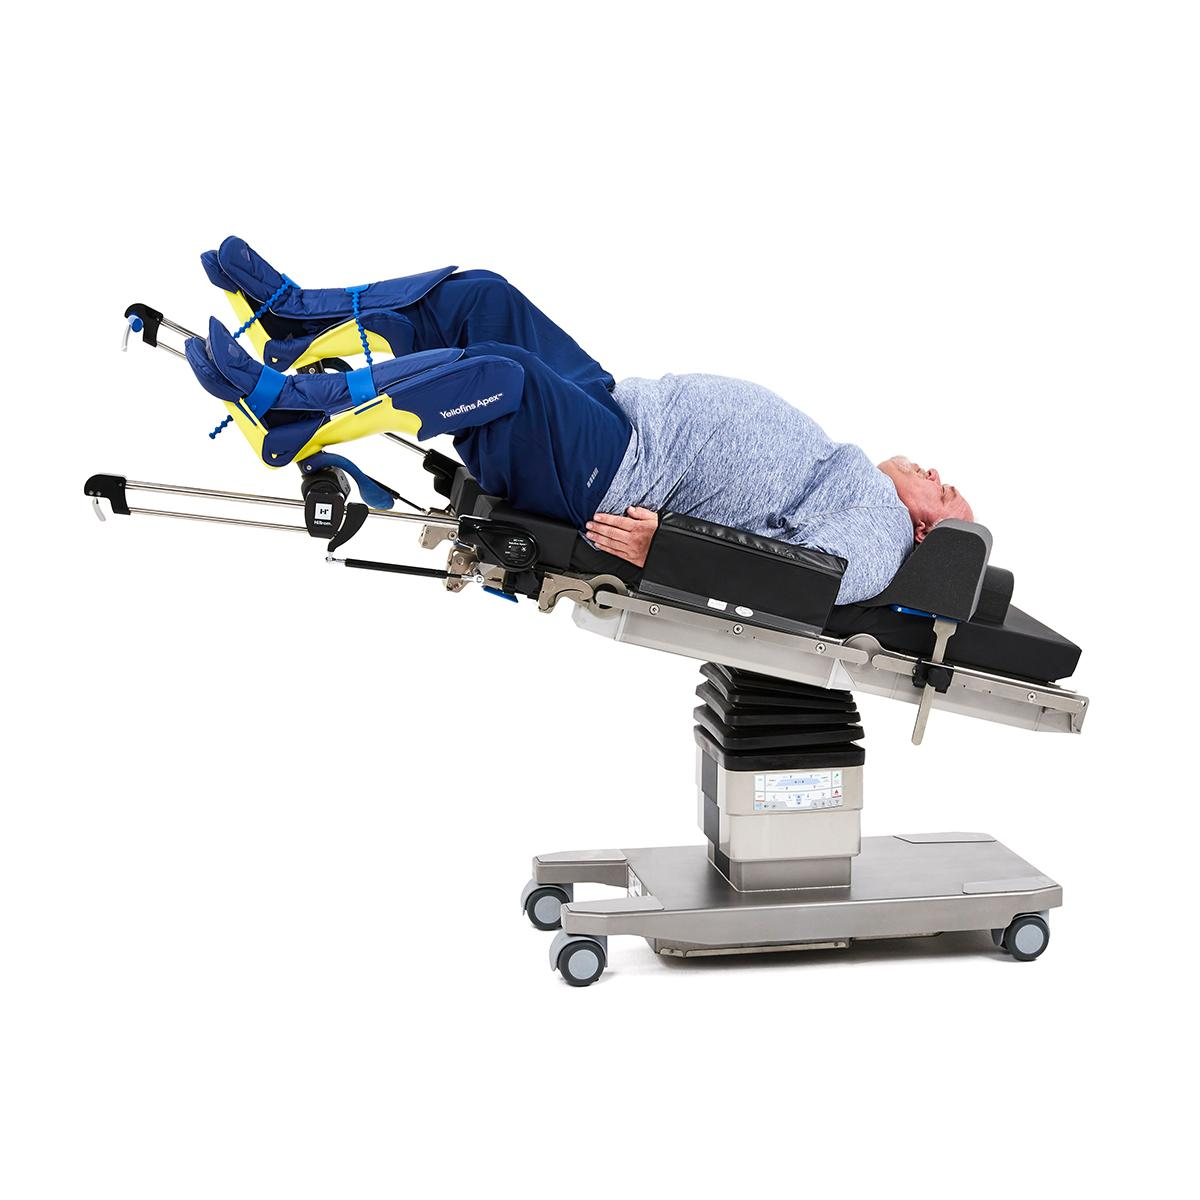 Bariatric patient positioned on Hillrom surgical table equipped with Yellofins Apex Advanced Stirrup accessories.